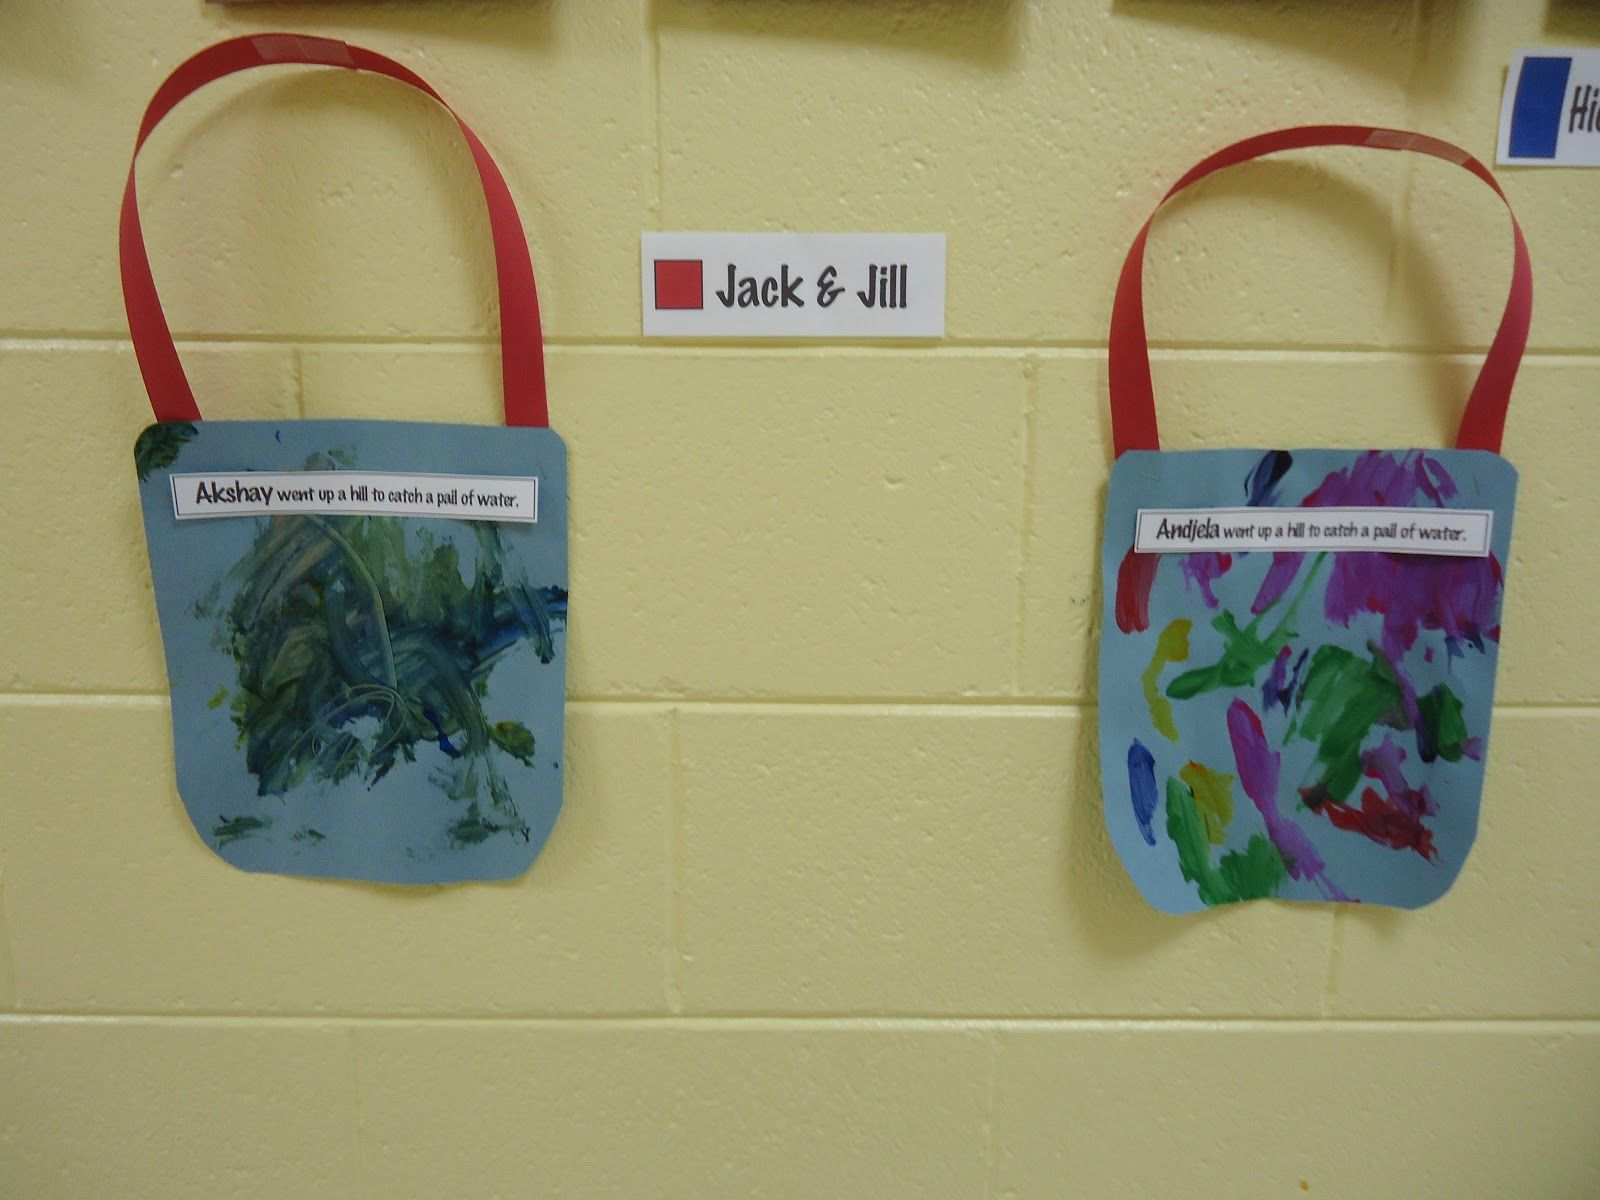 Trinity Preschool Mount Prospect: Learning colors and shapes through ...